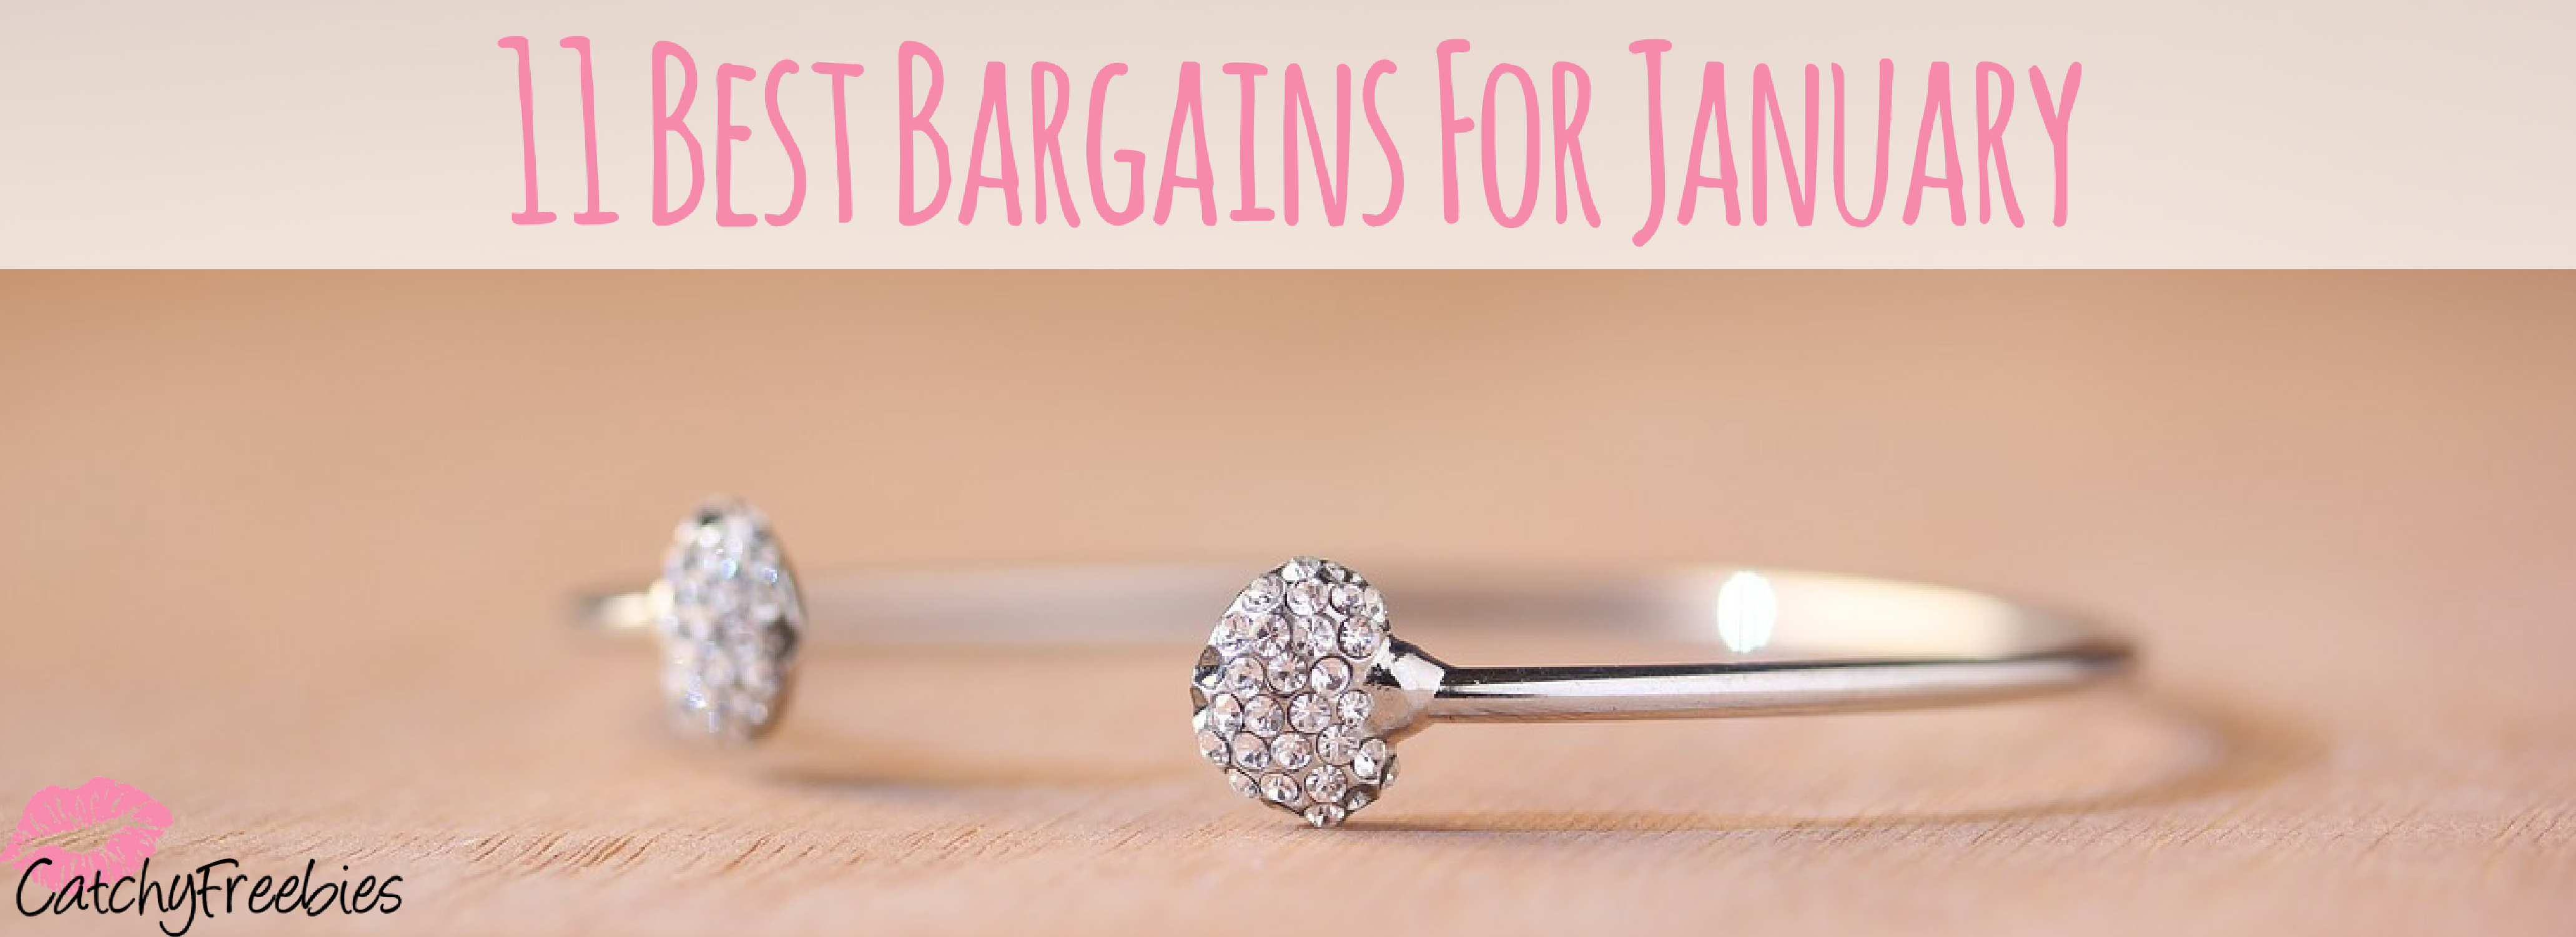 11 Best Bargains For January